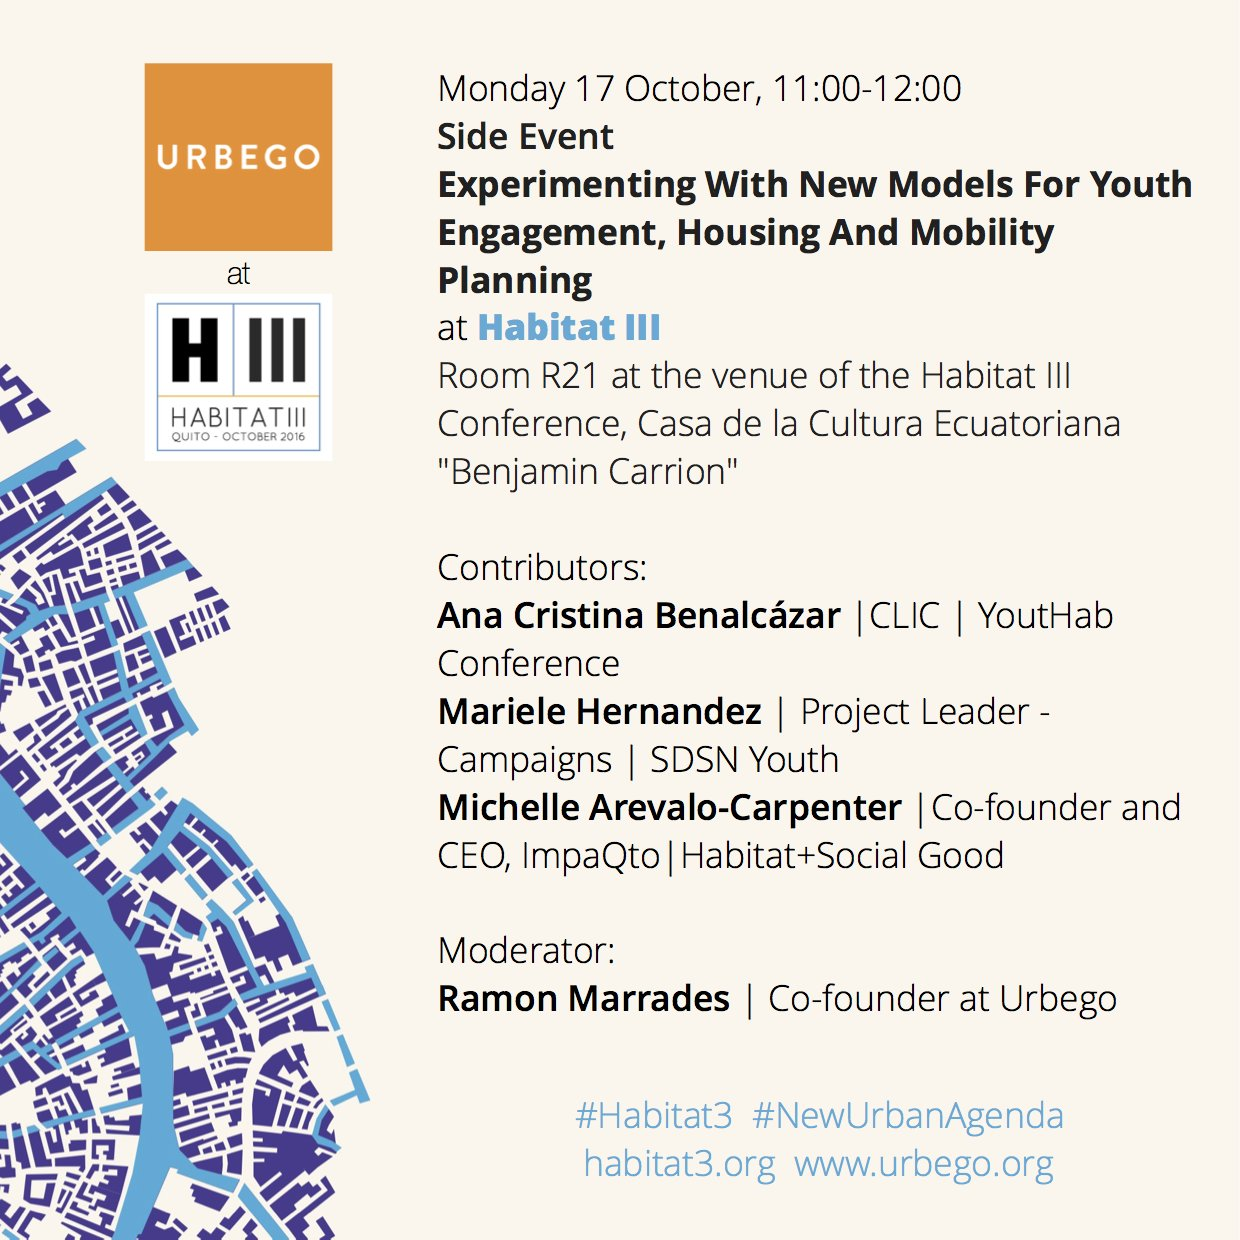 Join our side event today at #Habitat3. Experimenting with new models for urban development. #NewUrbanAgenda #NuevaAgendaUrbana https://t.co/8iTcPEcj8l